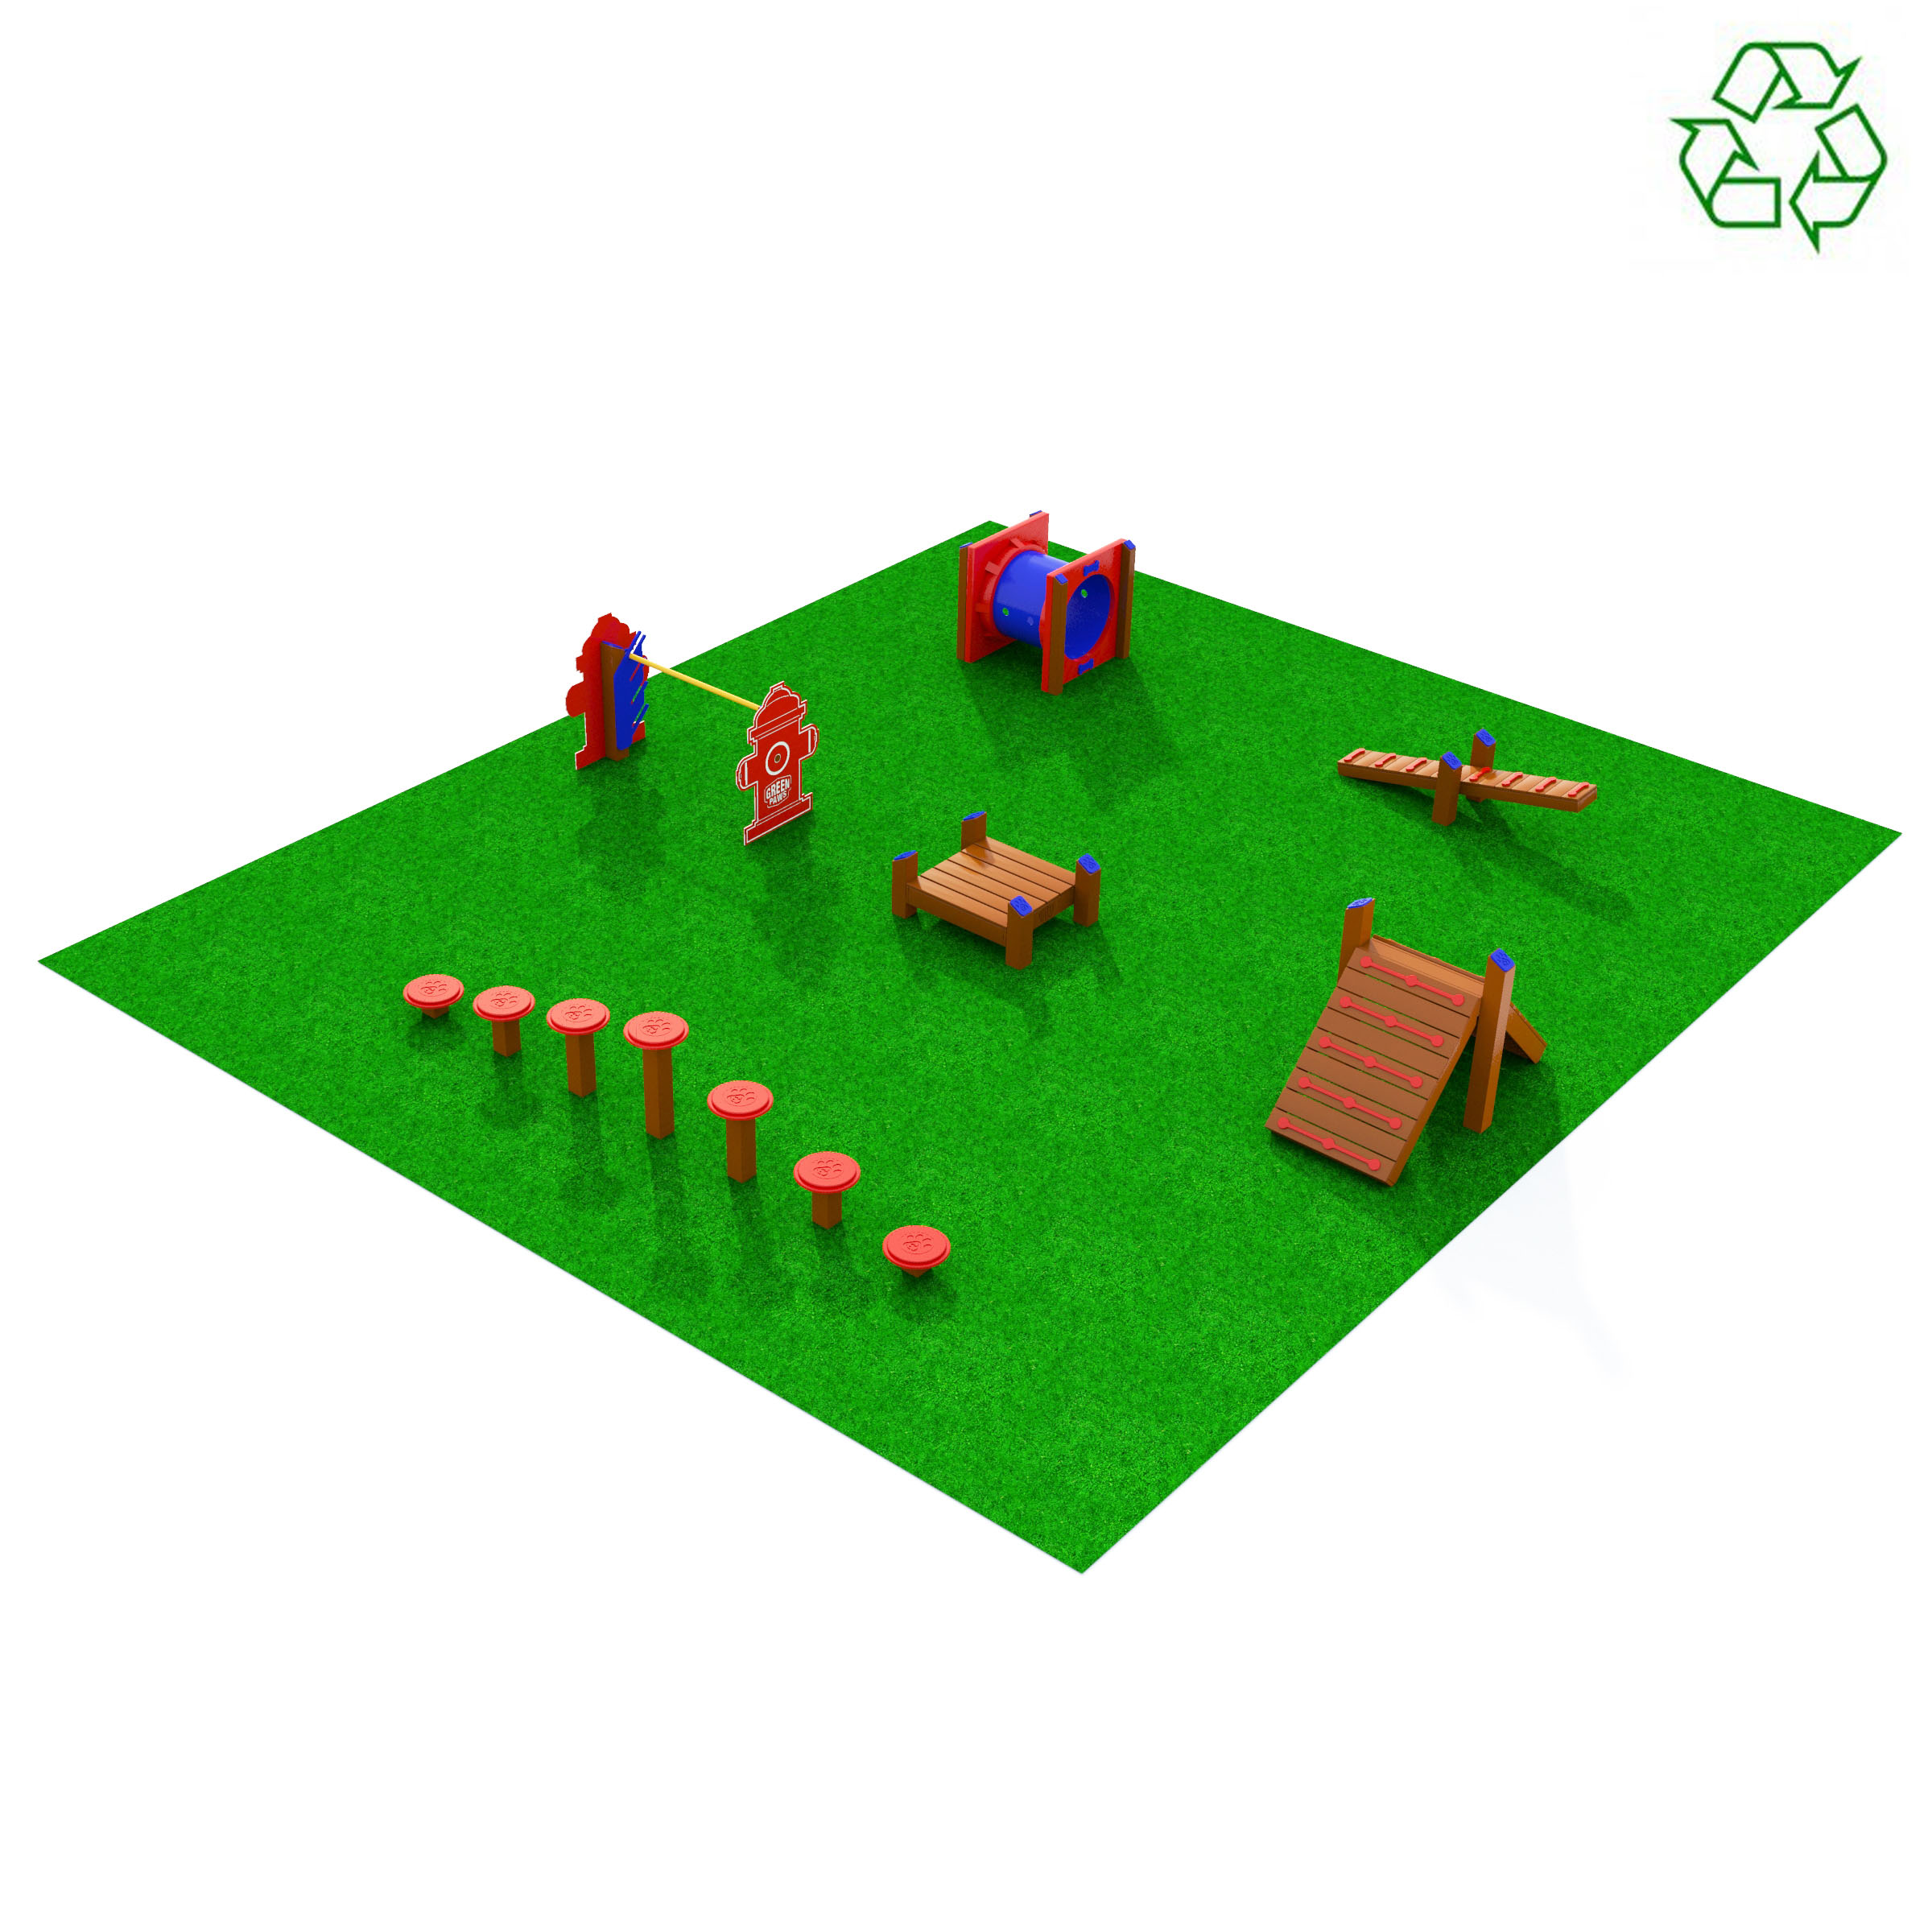 Pooch Pounce Dog Obstacle Course   TerraBound Solutions